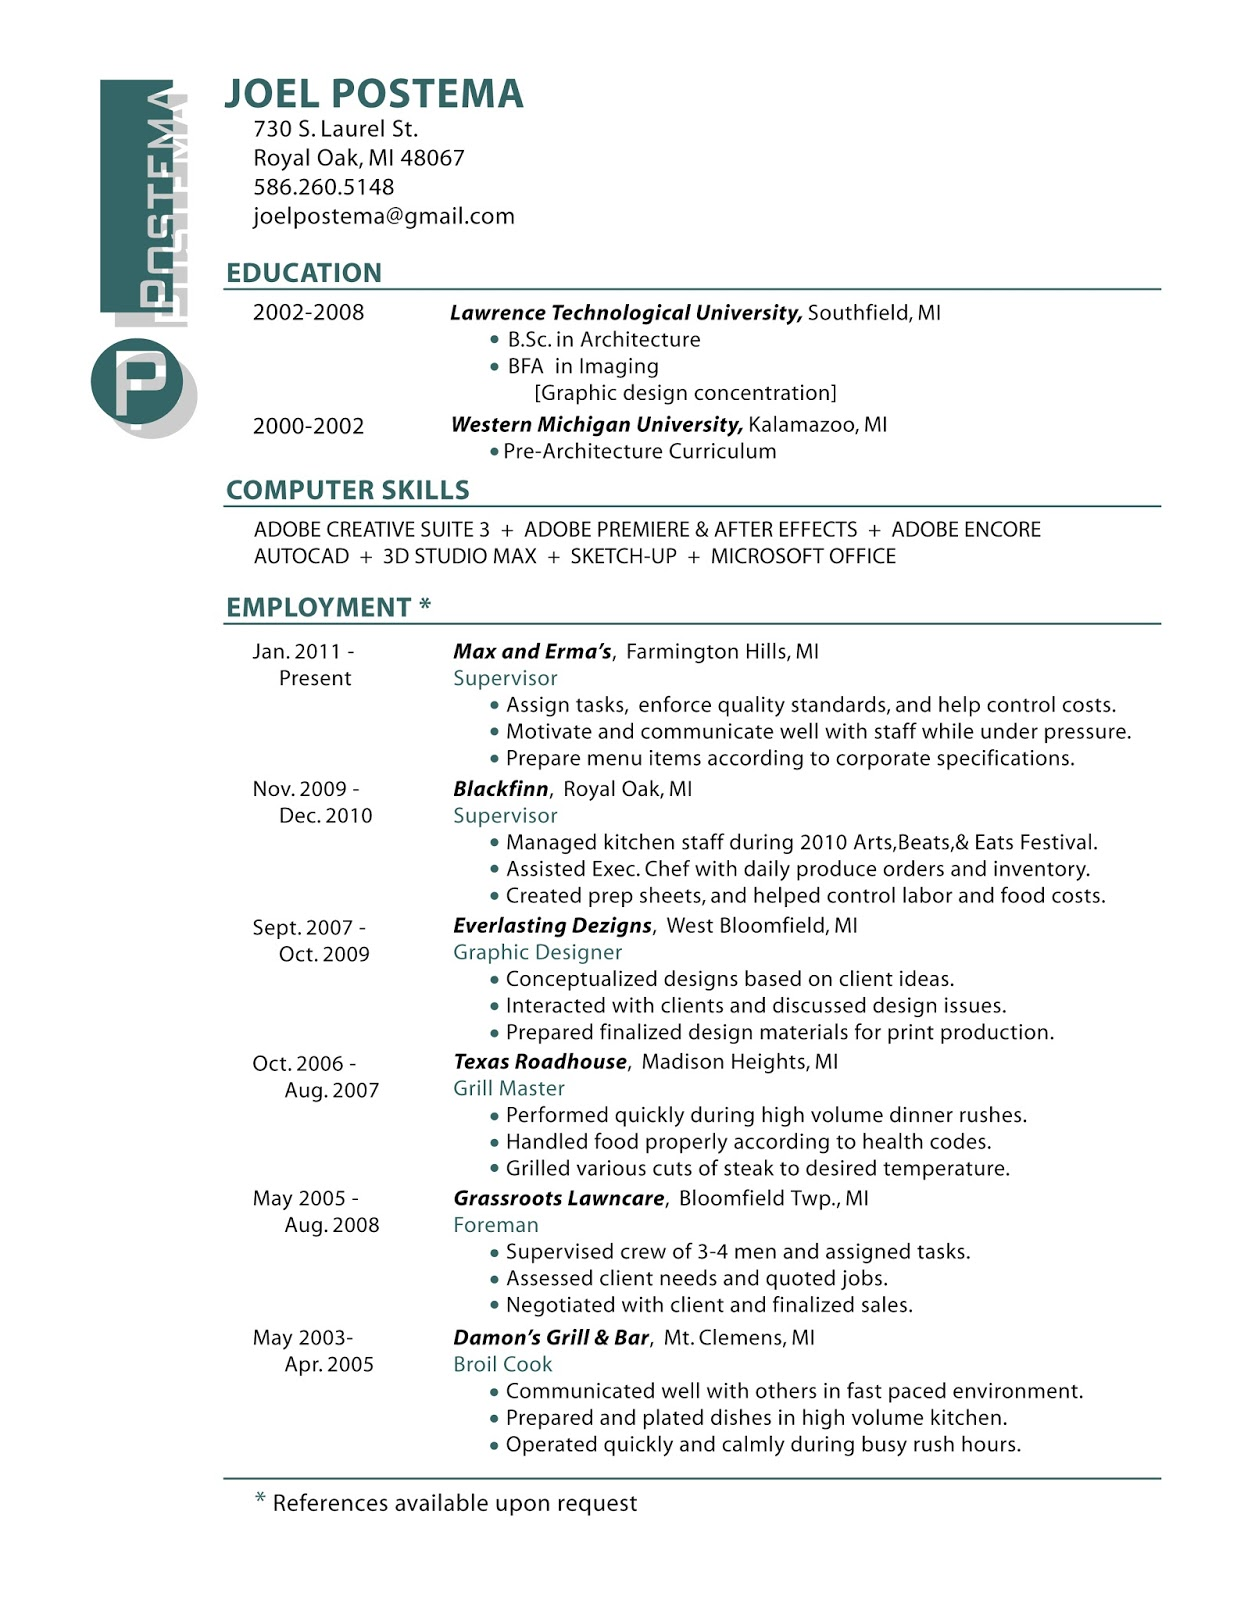 cv samples for graphic designers professional resume cover cv samples for graphic designers graphic design resume designer samples examples job widesp designer cv at